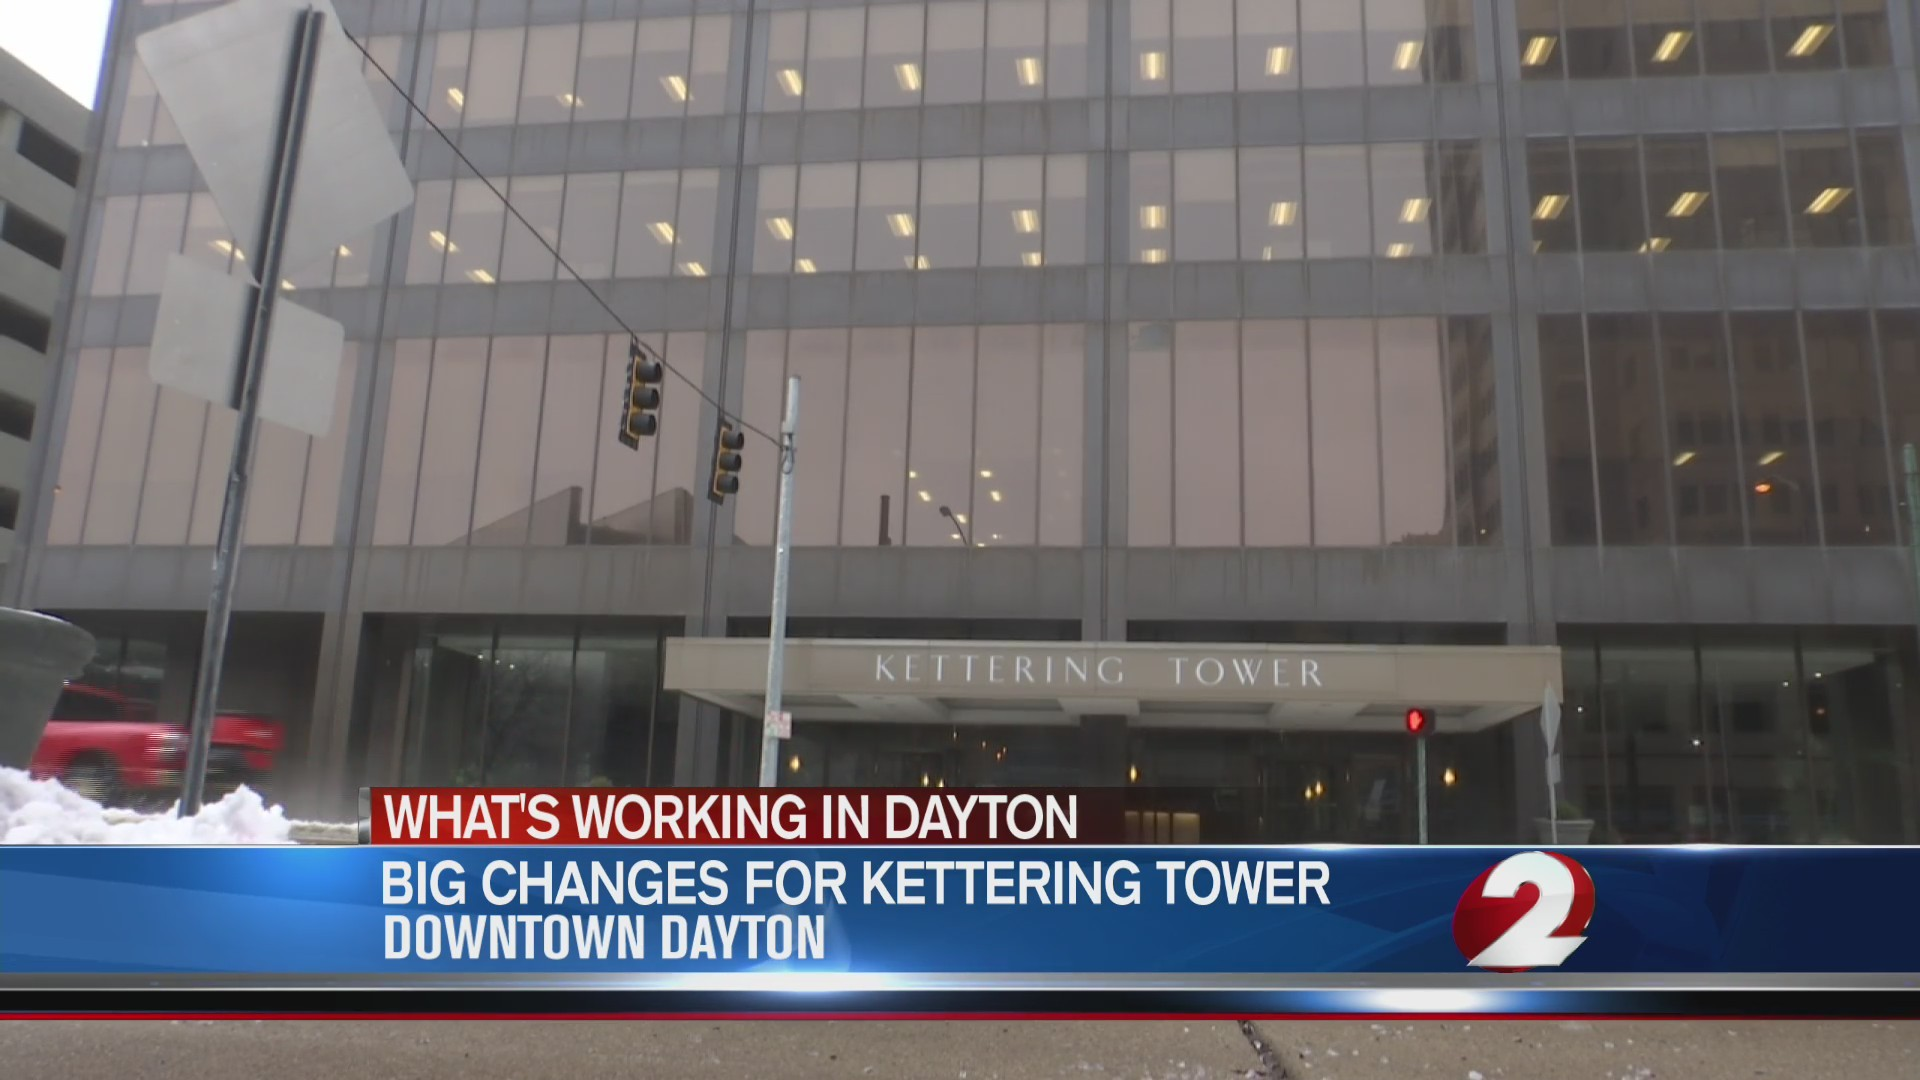 Big changes for Kettering Tower